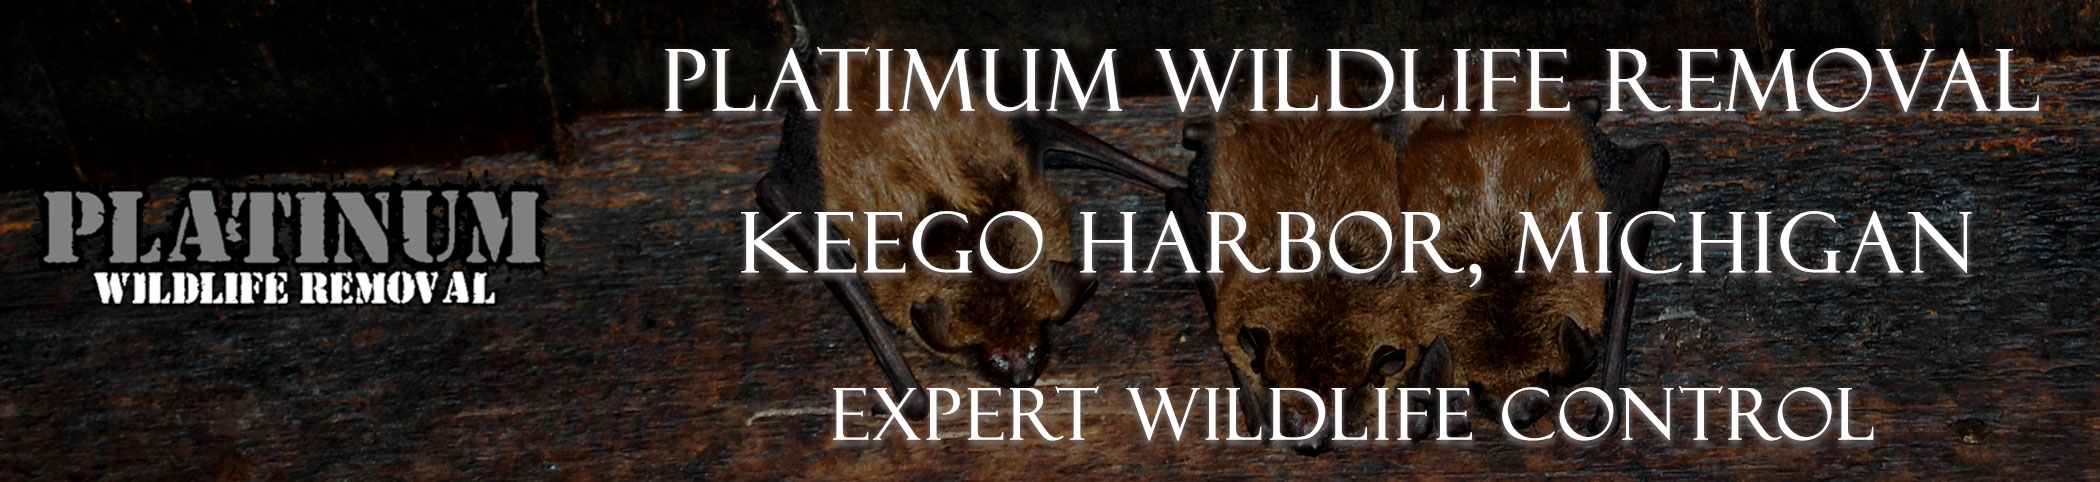 Keego-Harbor-Platinum-Wildlife-Removal-michgan